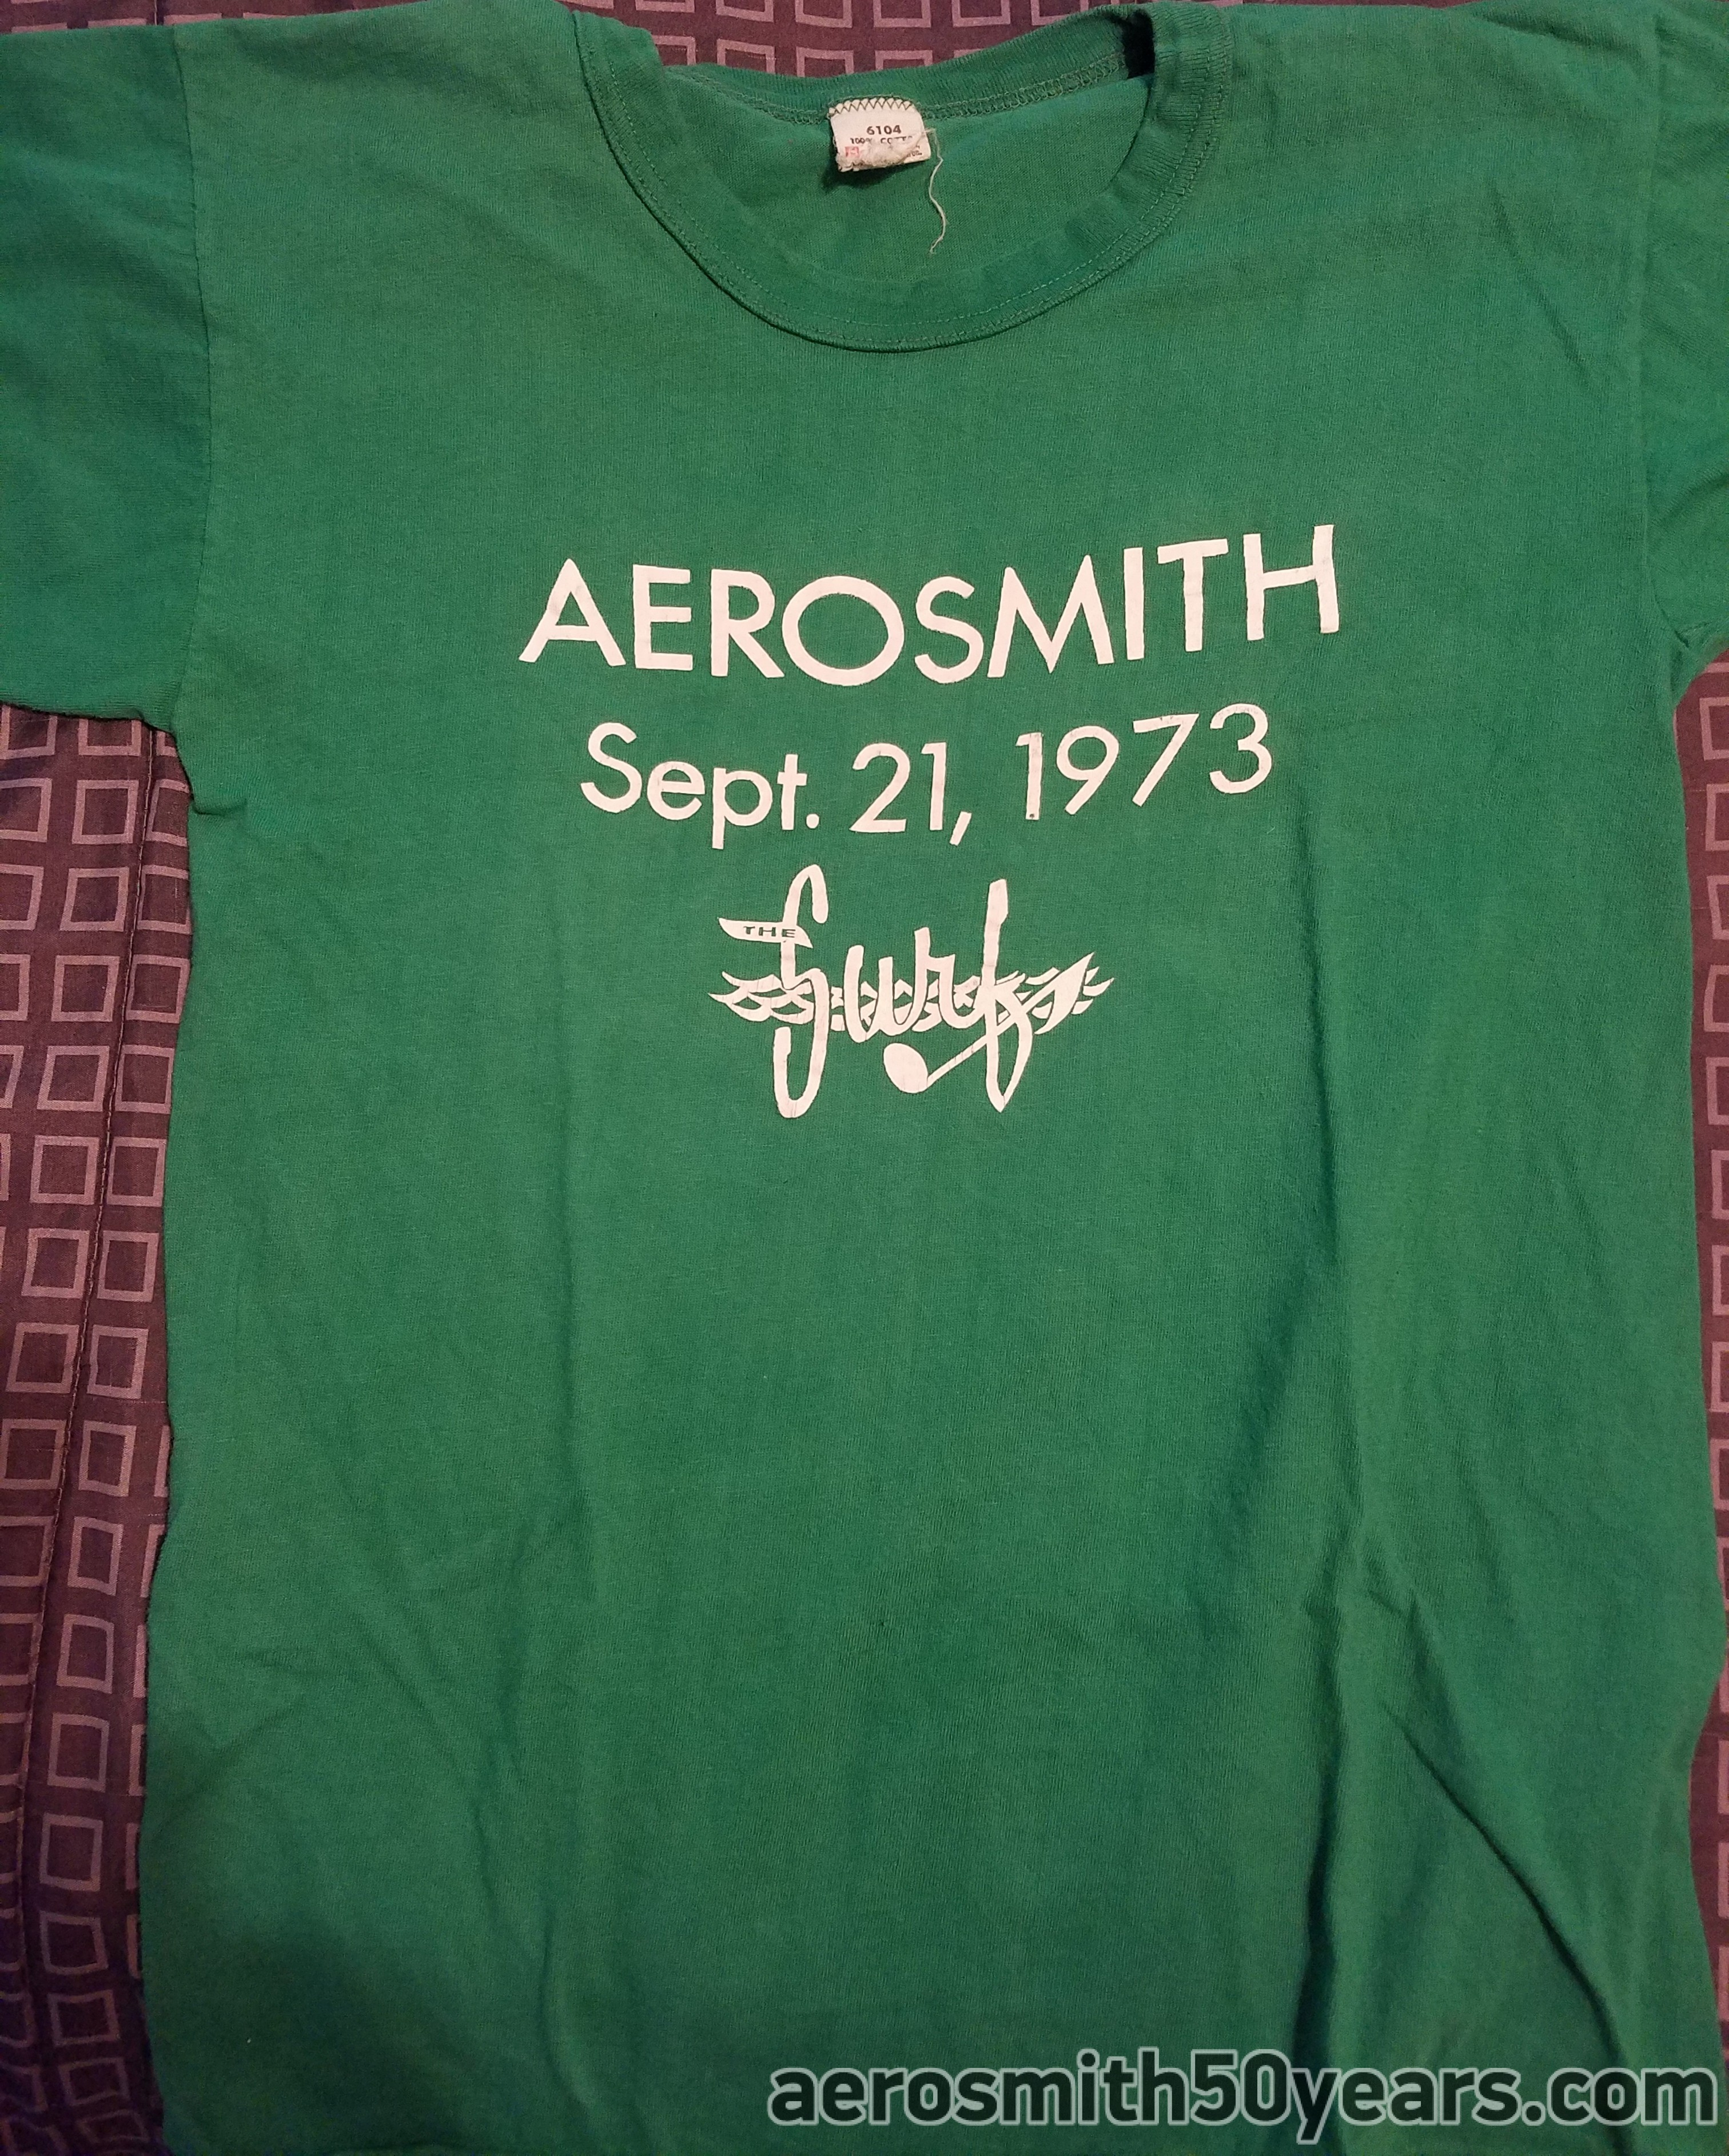 September 21, 1973 At The Surf, Nantasket Beach Hull, Massachusetts. These shirts we're printed by the club owner without the bands knowledge according to Kelly. But  Kelly struck up a deal for a dozen shirts and the band got theirs. You can see Brad wearing his.